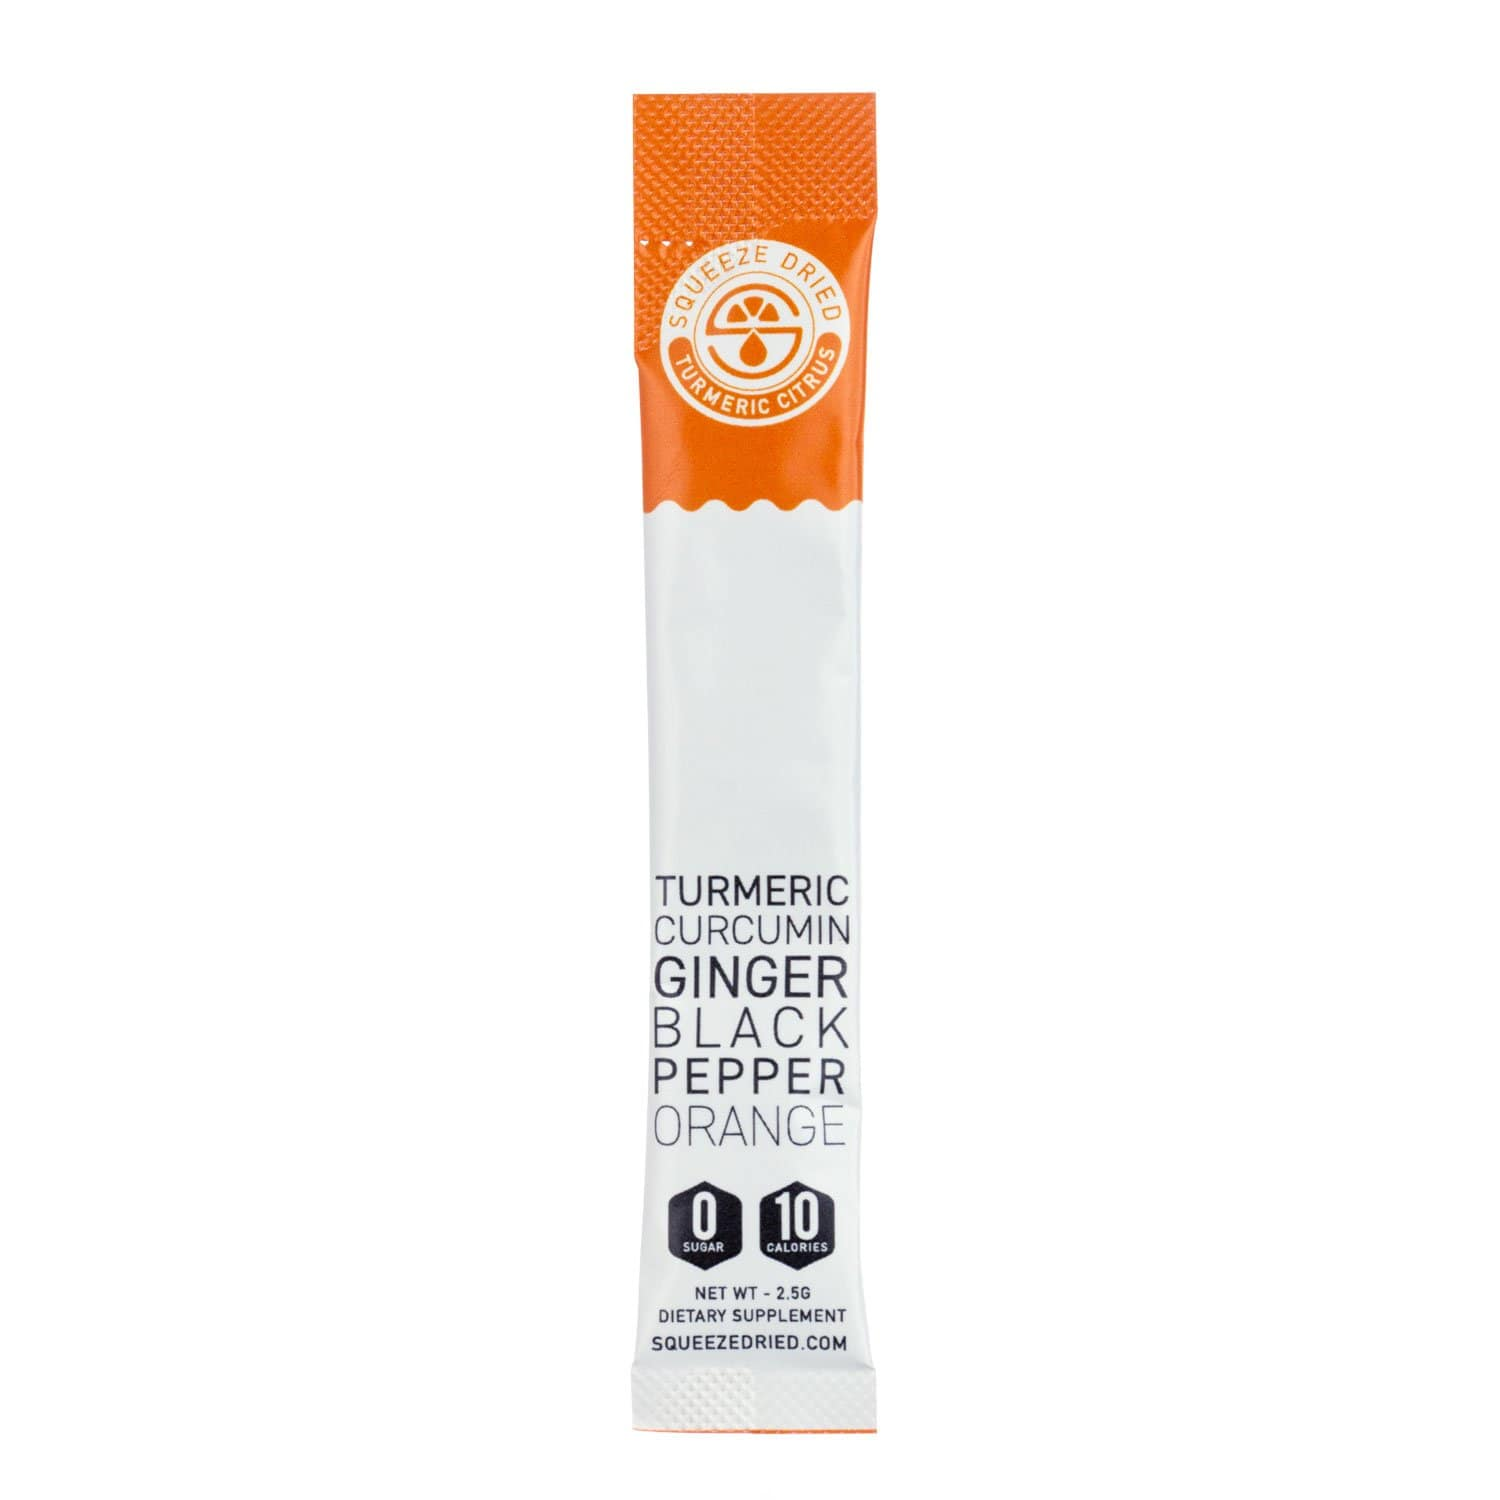 Turmeric-Citrus-Turmeric-Curcumin-Ginger-Black-Pepper-Orange-Wellness-Stick